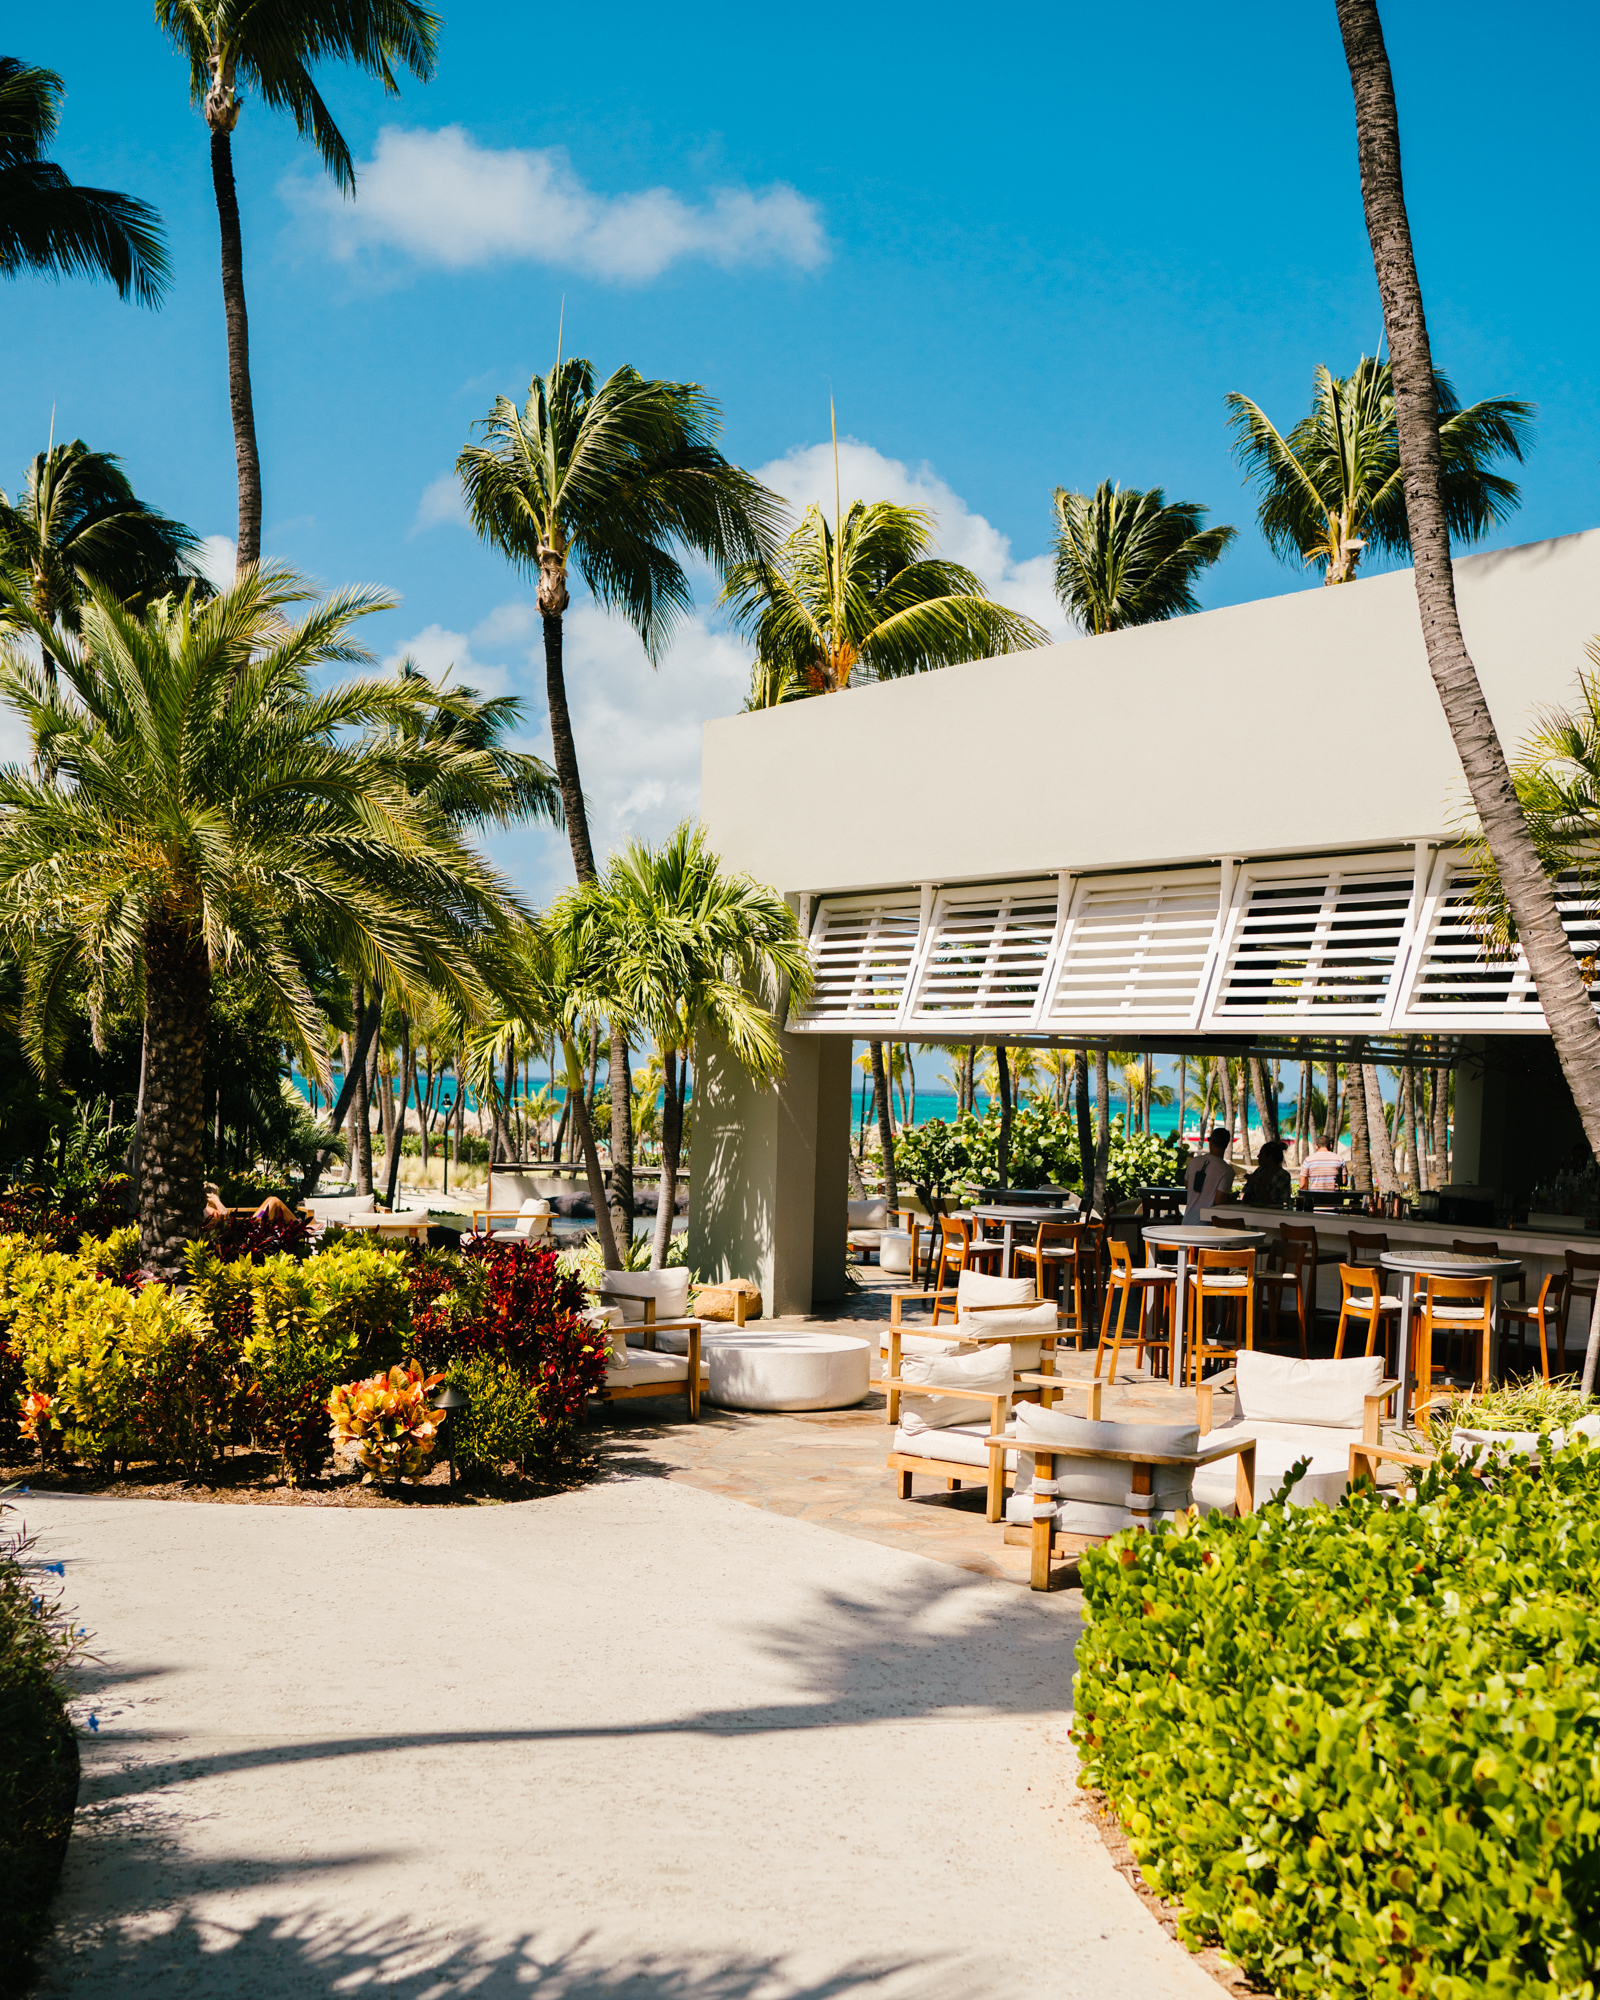 Best Restaurants in Aruba